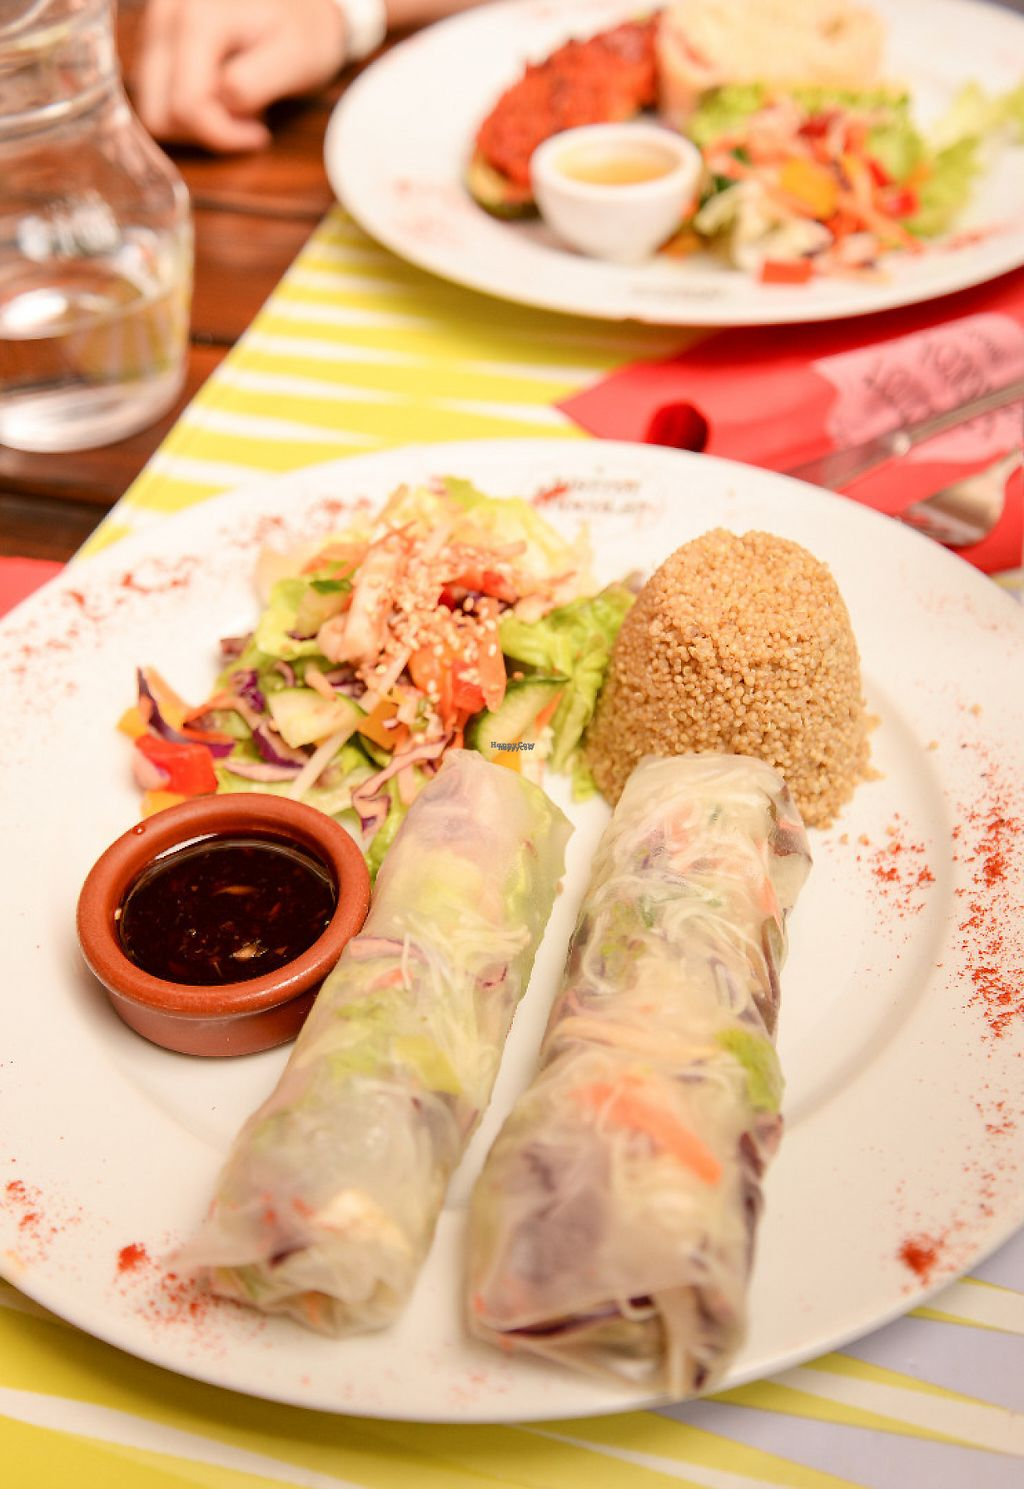 """Photo of Bistrot and Chocolat  by <a href=""""/members/profile/Nais23"""">Nais23</a> <br/>Spring rolls <br/> March 20, 2017  - <a href='/contact/abuse/image/34752/238723'>Report</a>"""